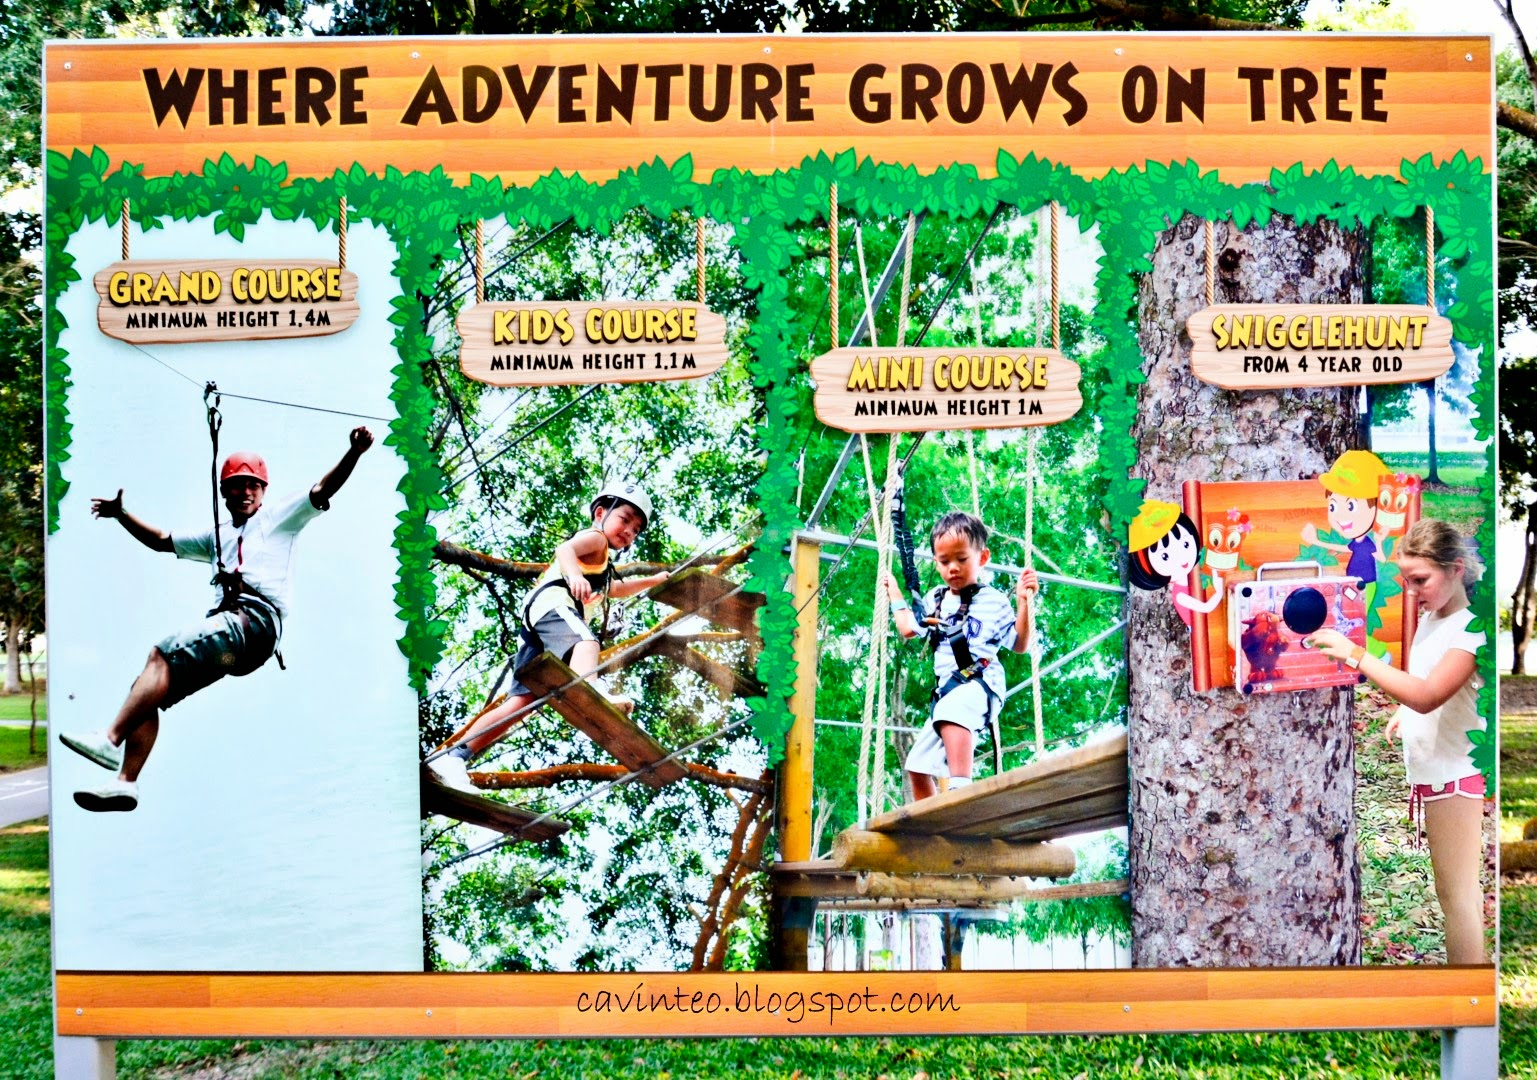 Entree Kibbles Forest Adventure The Place To Conquer Our Fear For Heights Bedok Reservoir Park Singapore